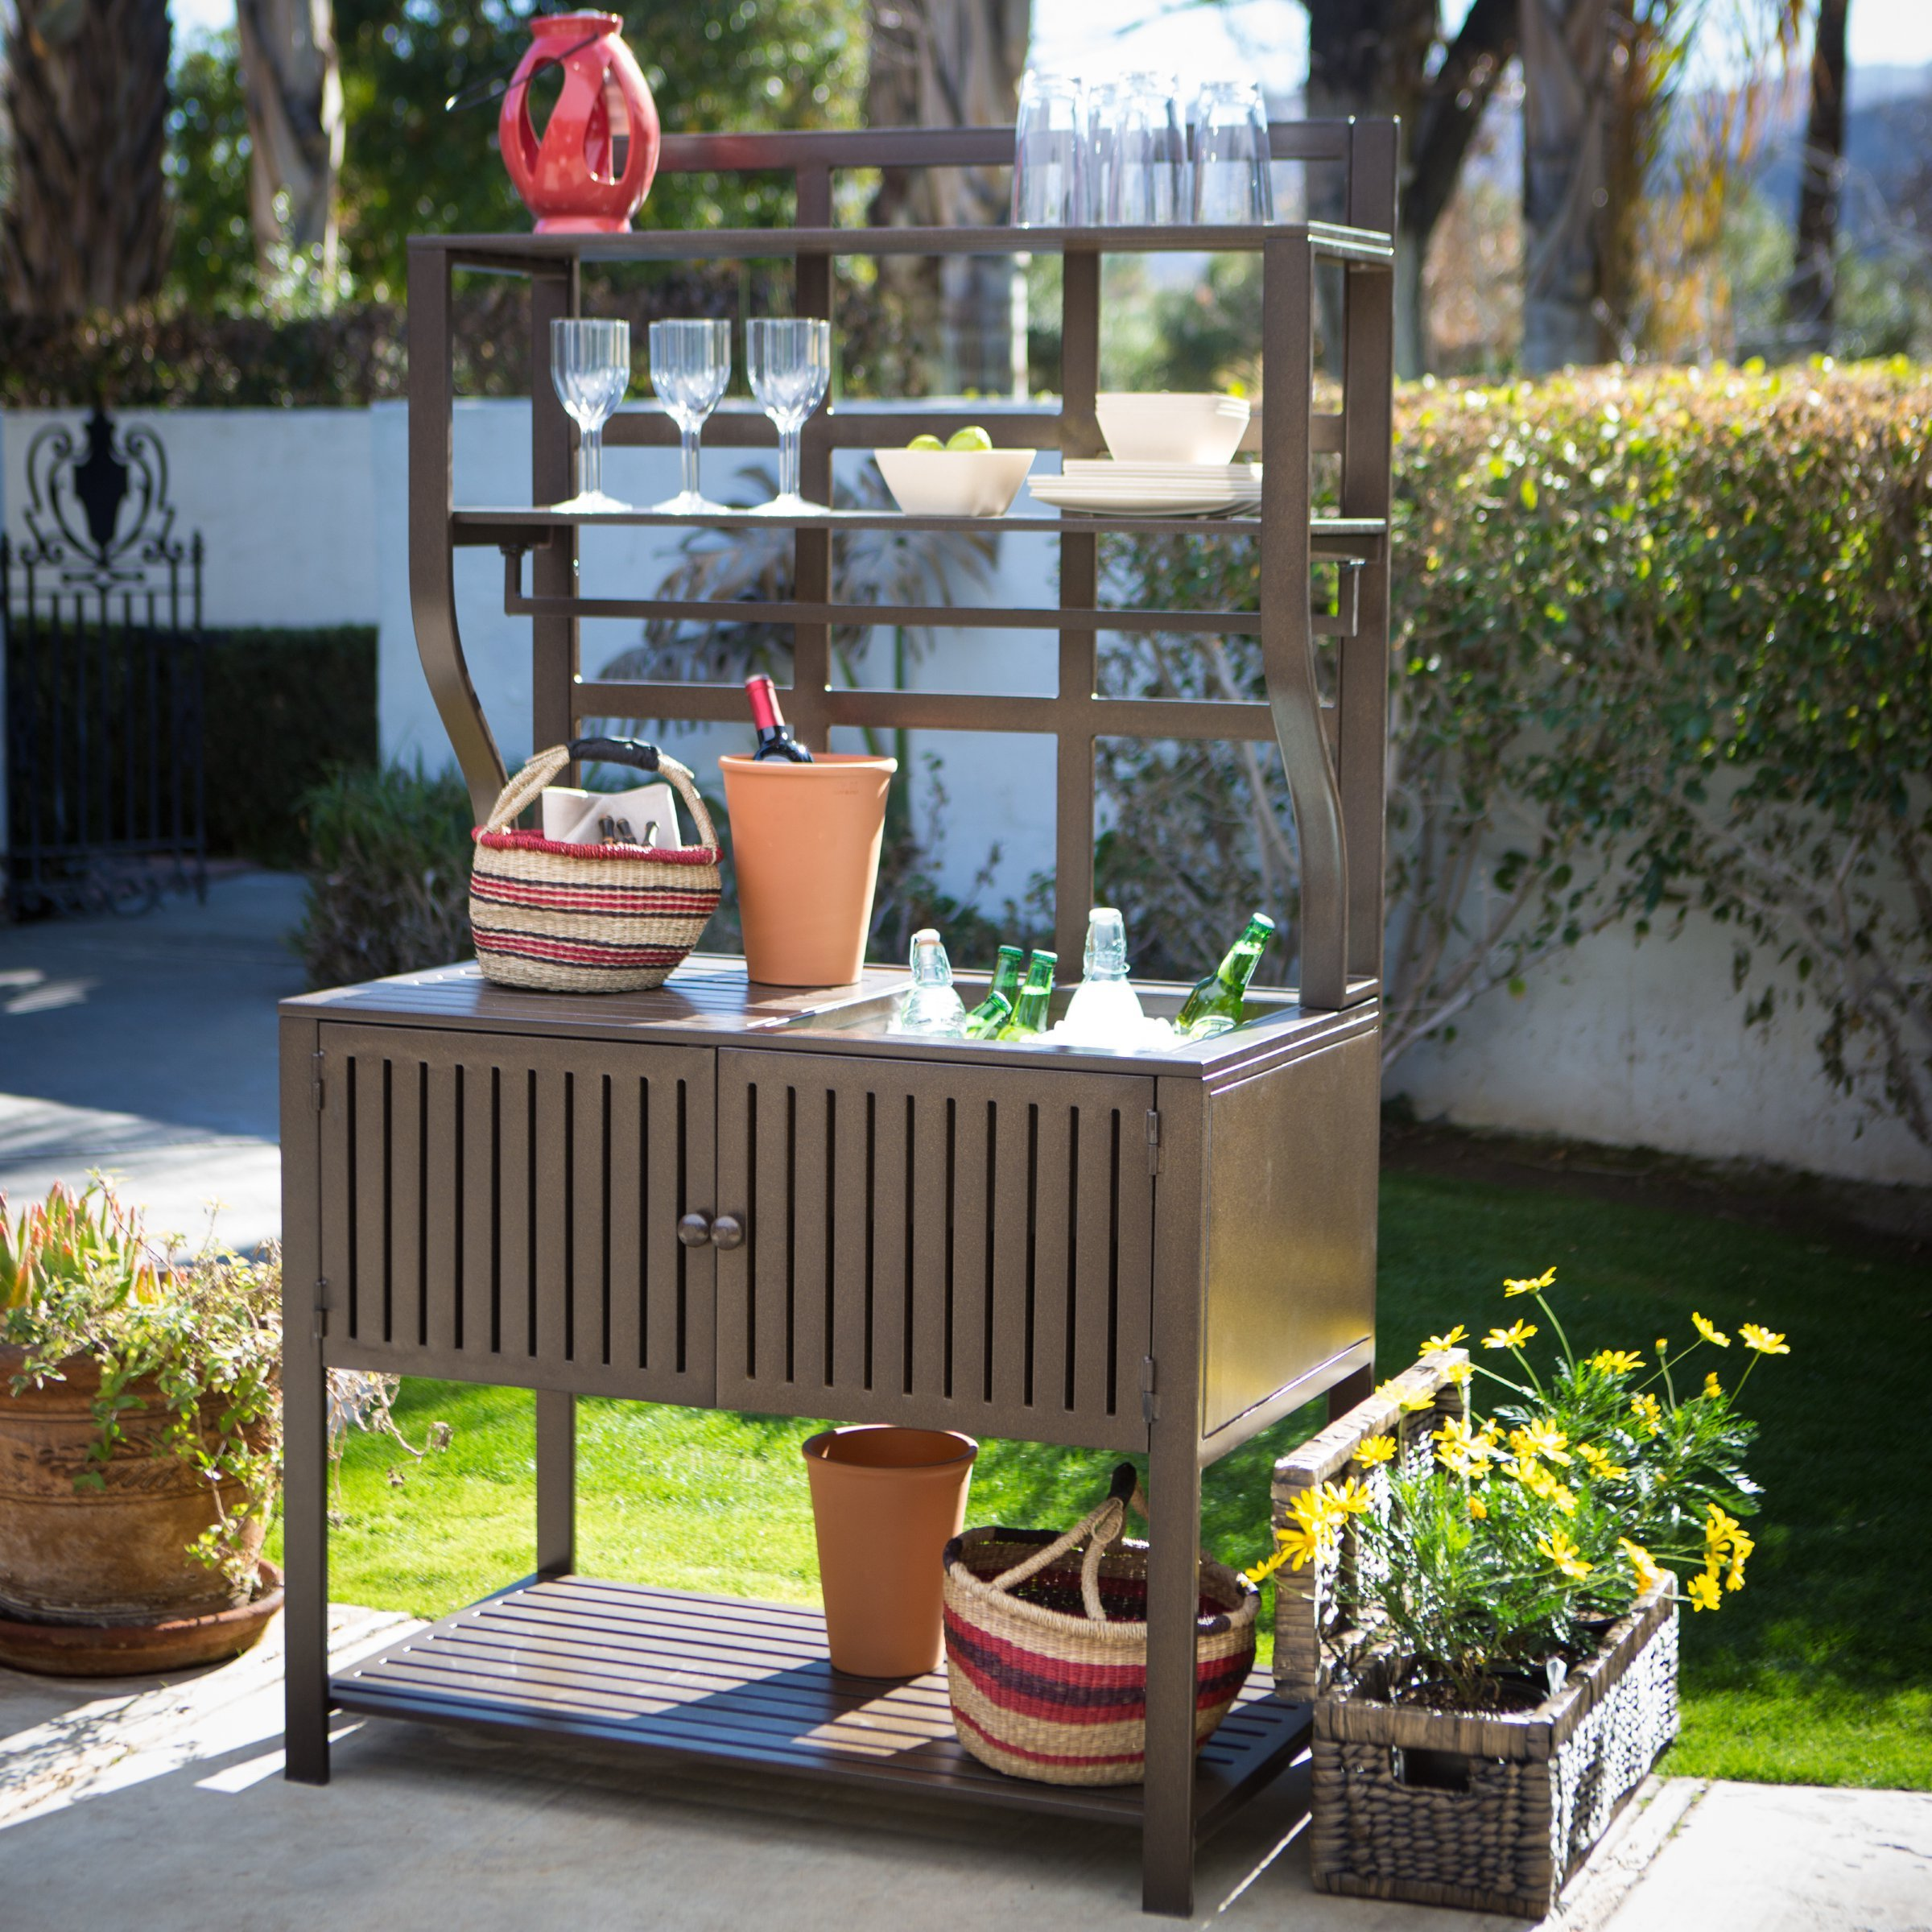 Contemporary Style, Modern Metal Chestnut Brown Finish Outdoor Potting Bench 42''W x 23''D x 72''H With Storage and 2 Slatted Shelves, 7 Hooks for Hanging Gardening Tools by Belham Living (Image #6)